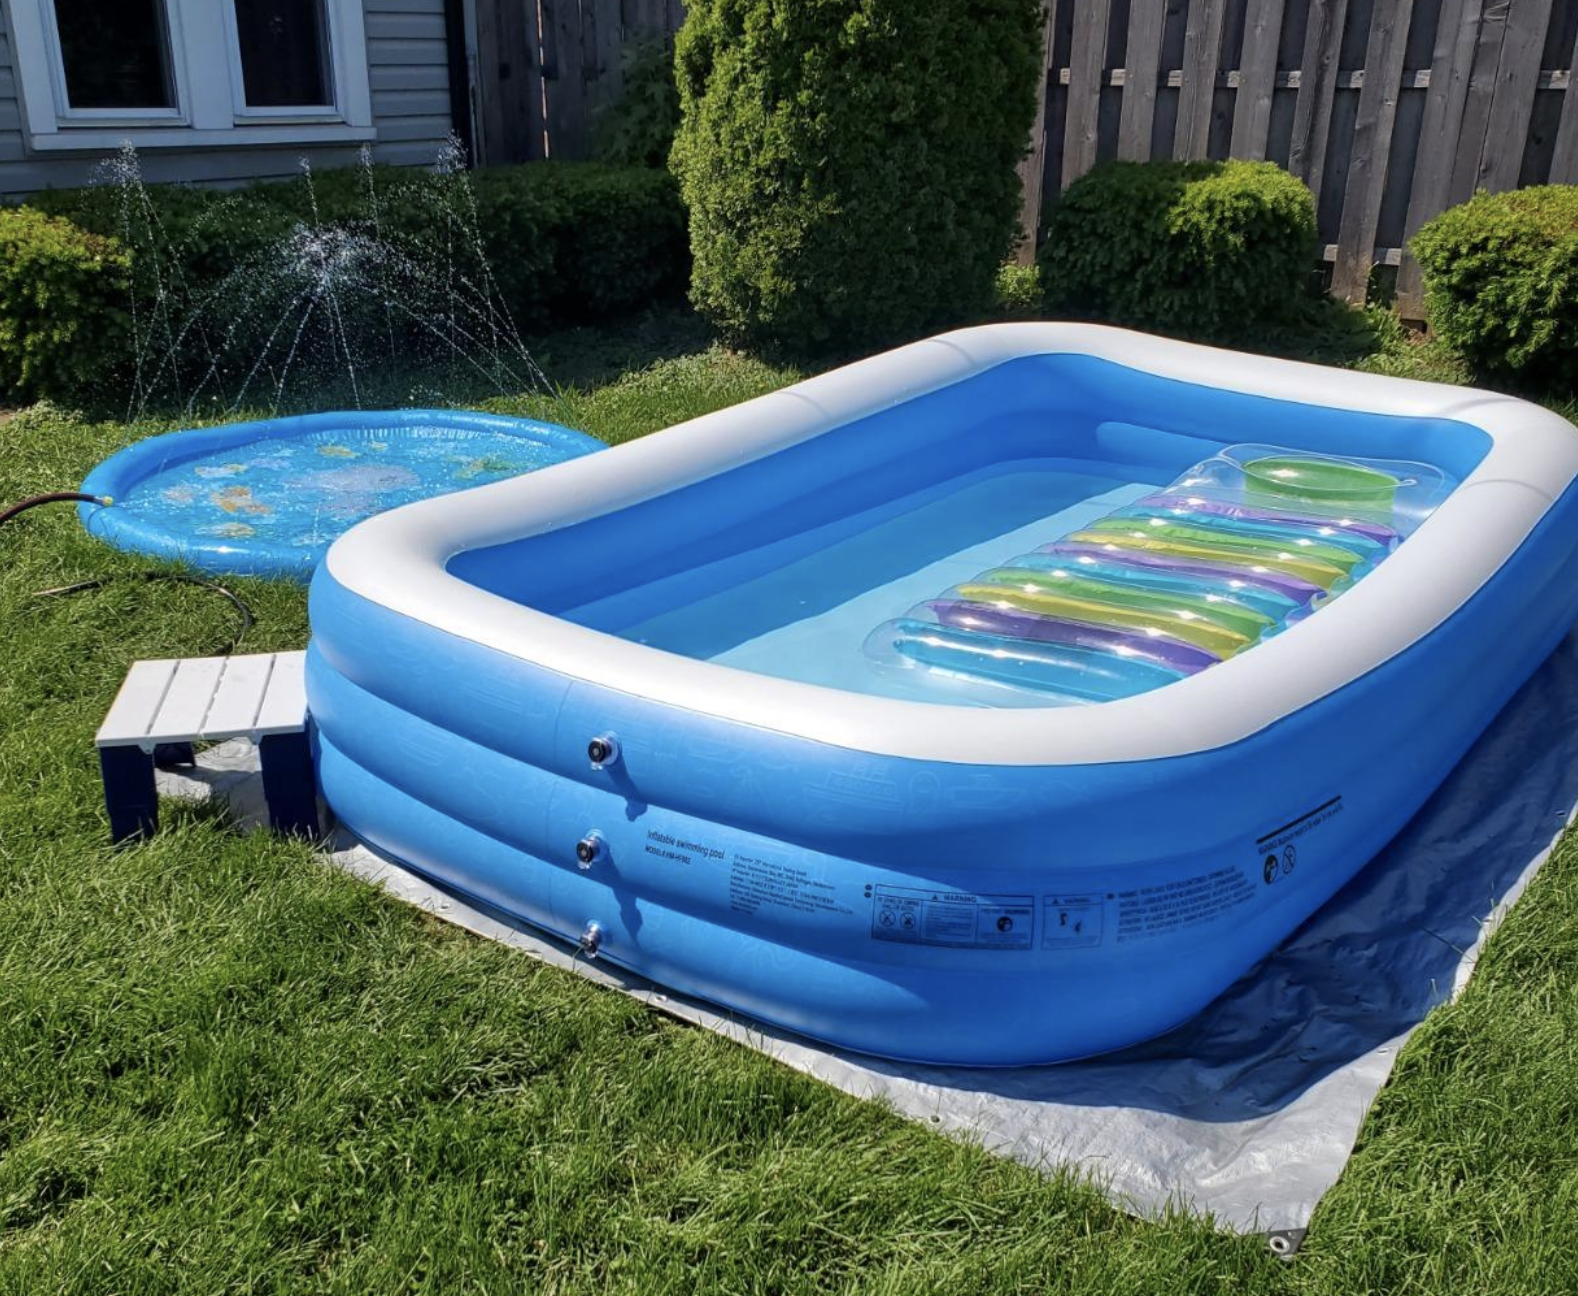 the blue pool filled with water and a float inside